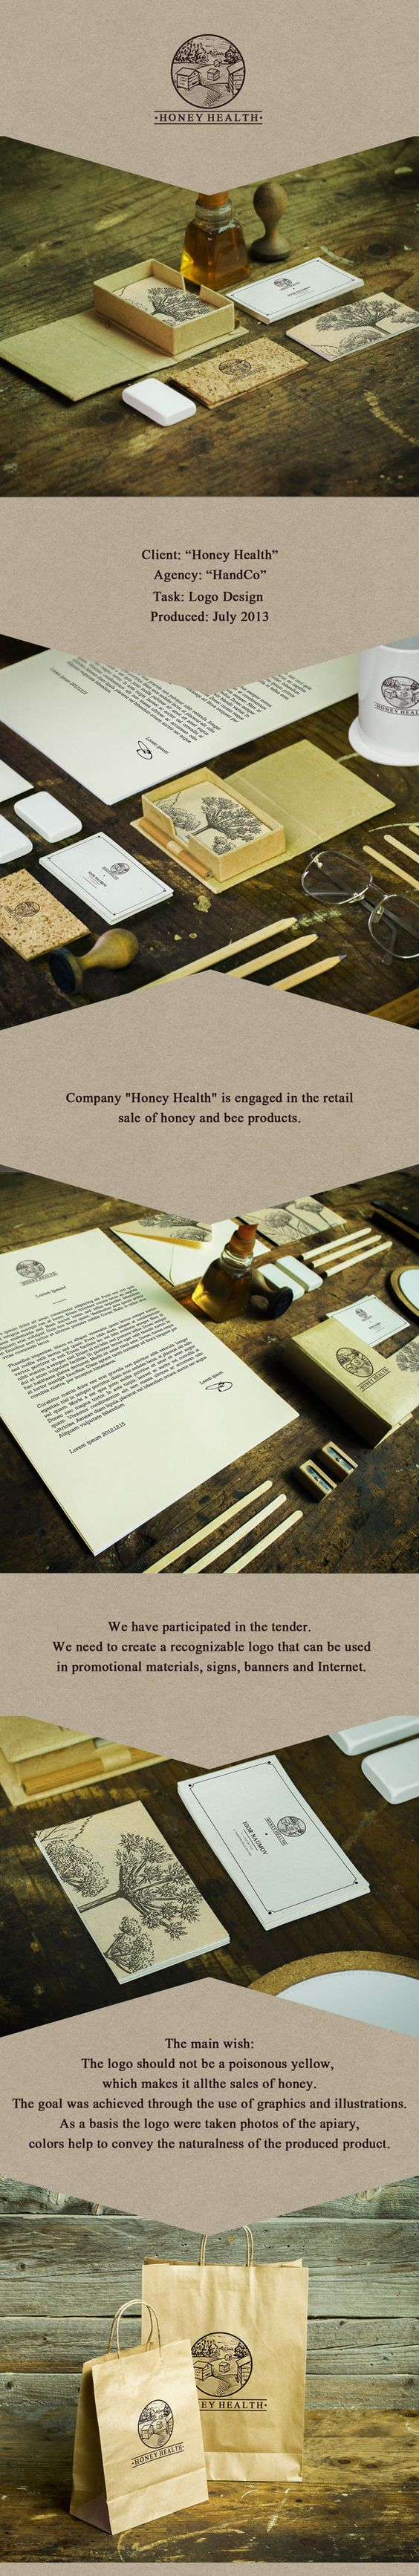 Honey Health by Handco Project, via Behance